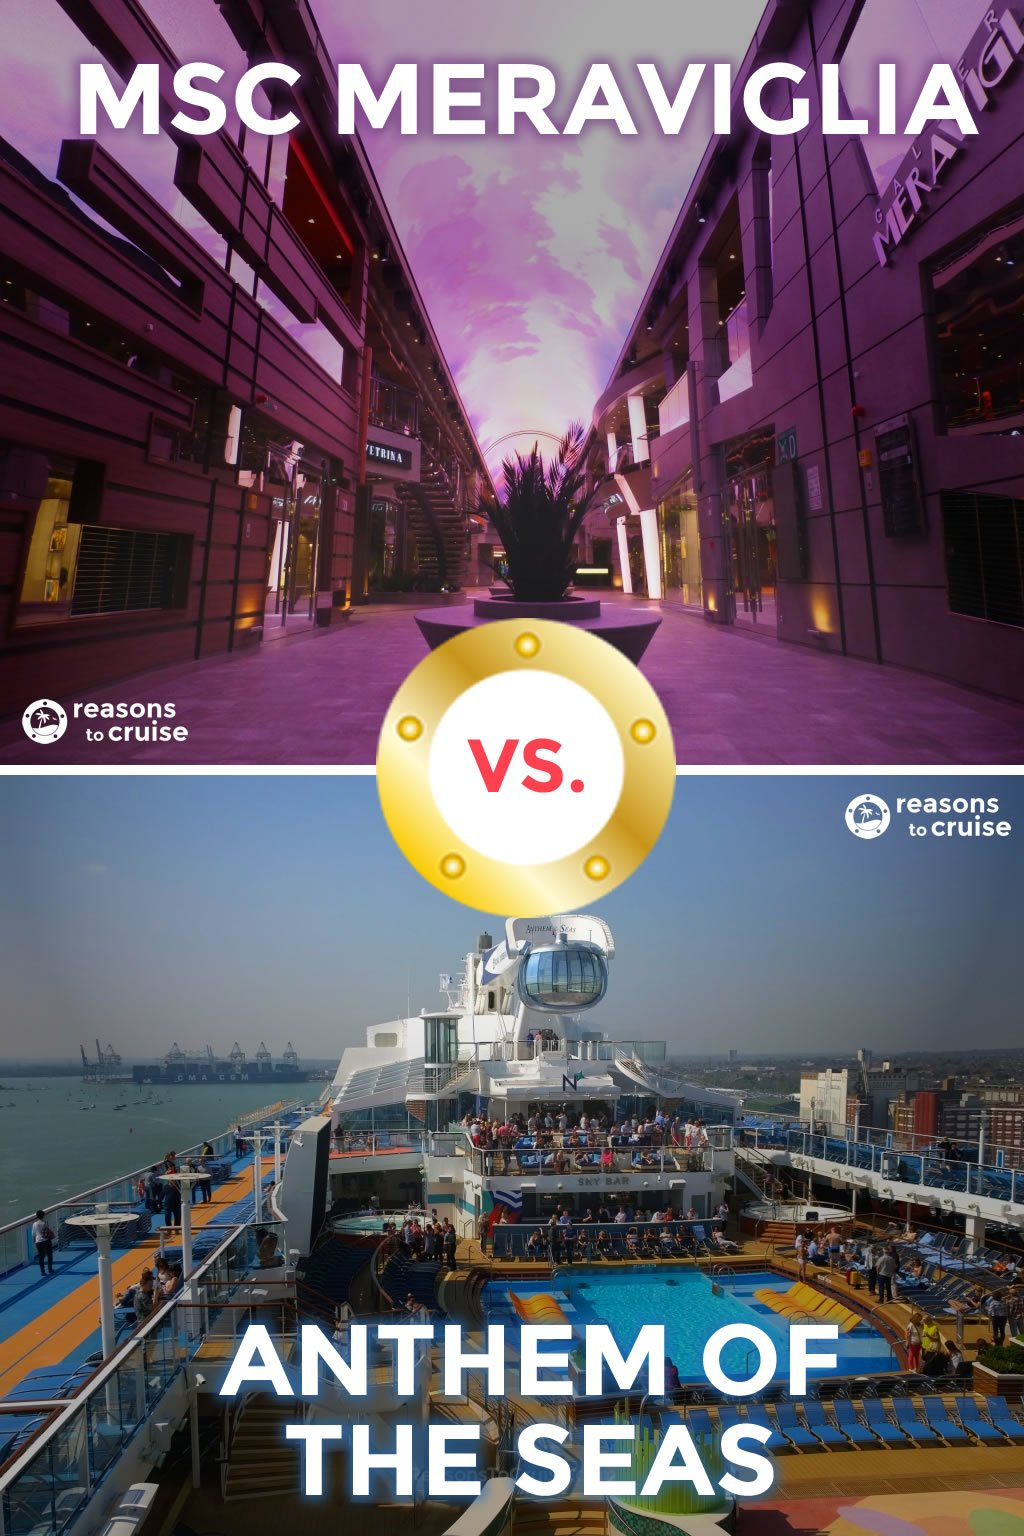 MSC Meraviglia versus Anthem of the Seas